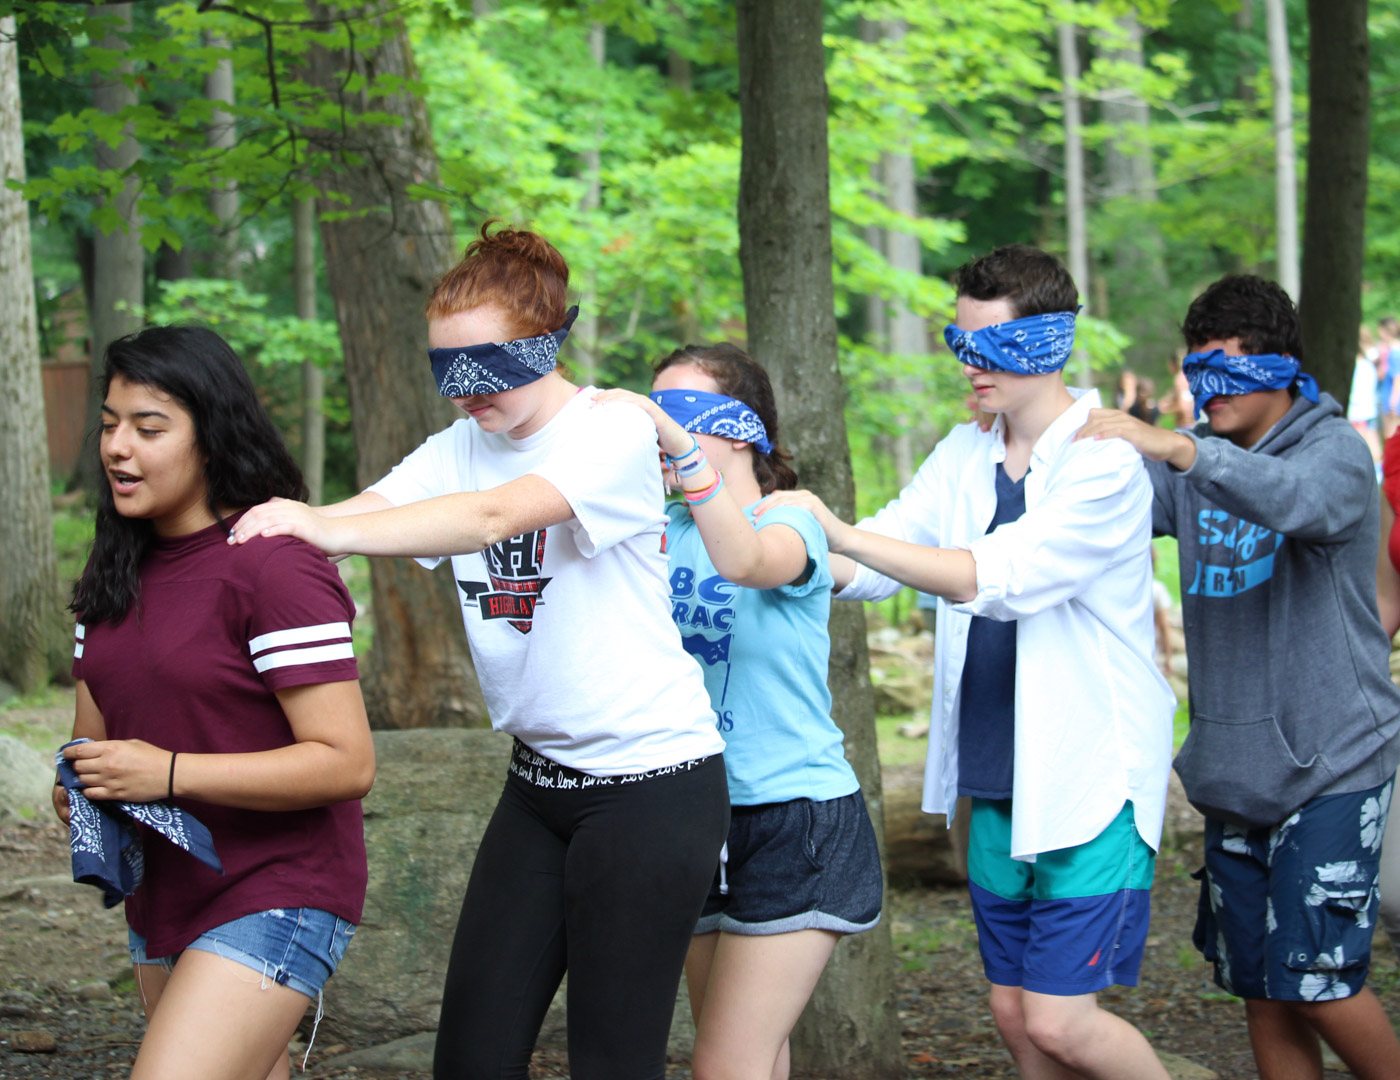 Campers participating in a group bonding exercise with blindfolds all walking in a line with hands on the shoulders of the person in front of them